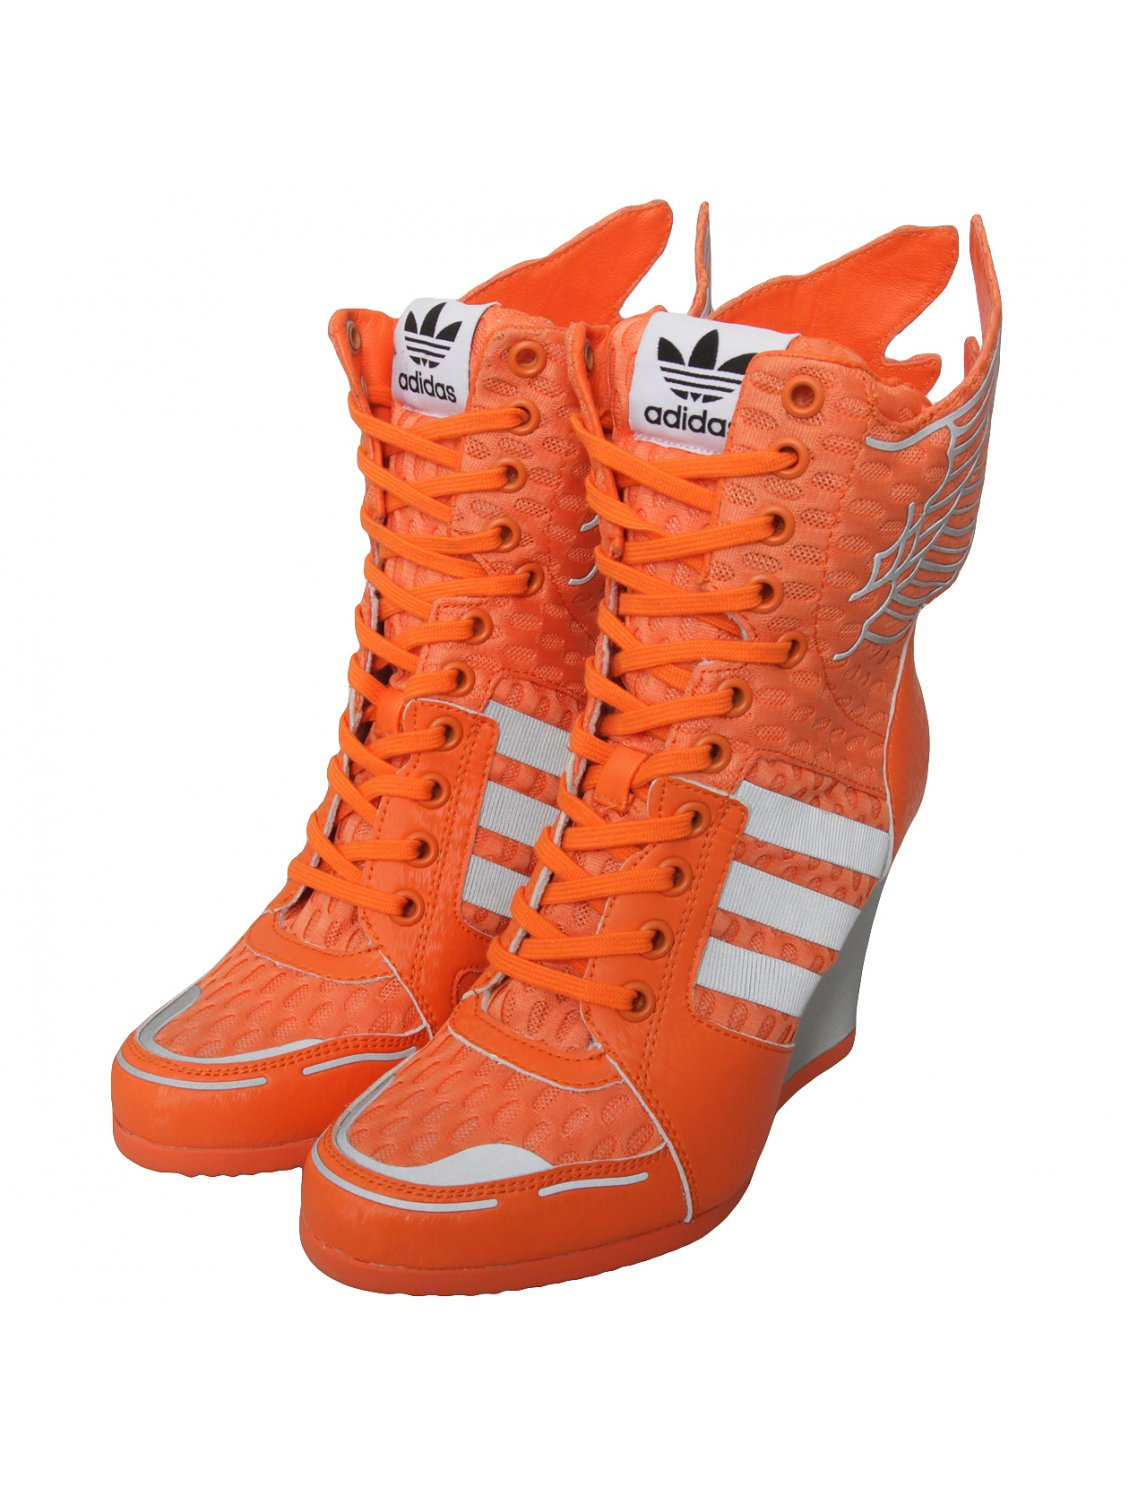 Jeremy In Orange Wedge Lyst Scott For Adidas Wings Athletic QrdhxtsC